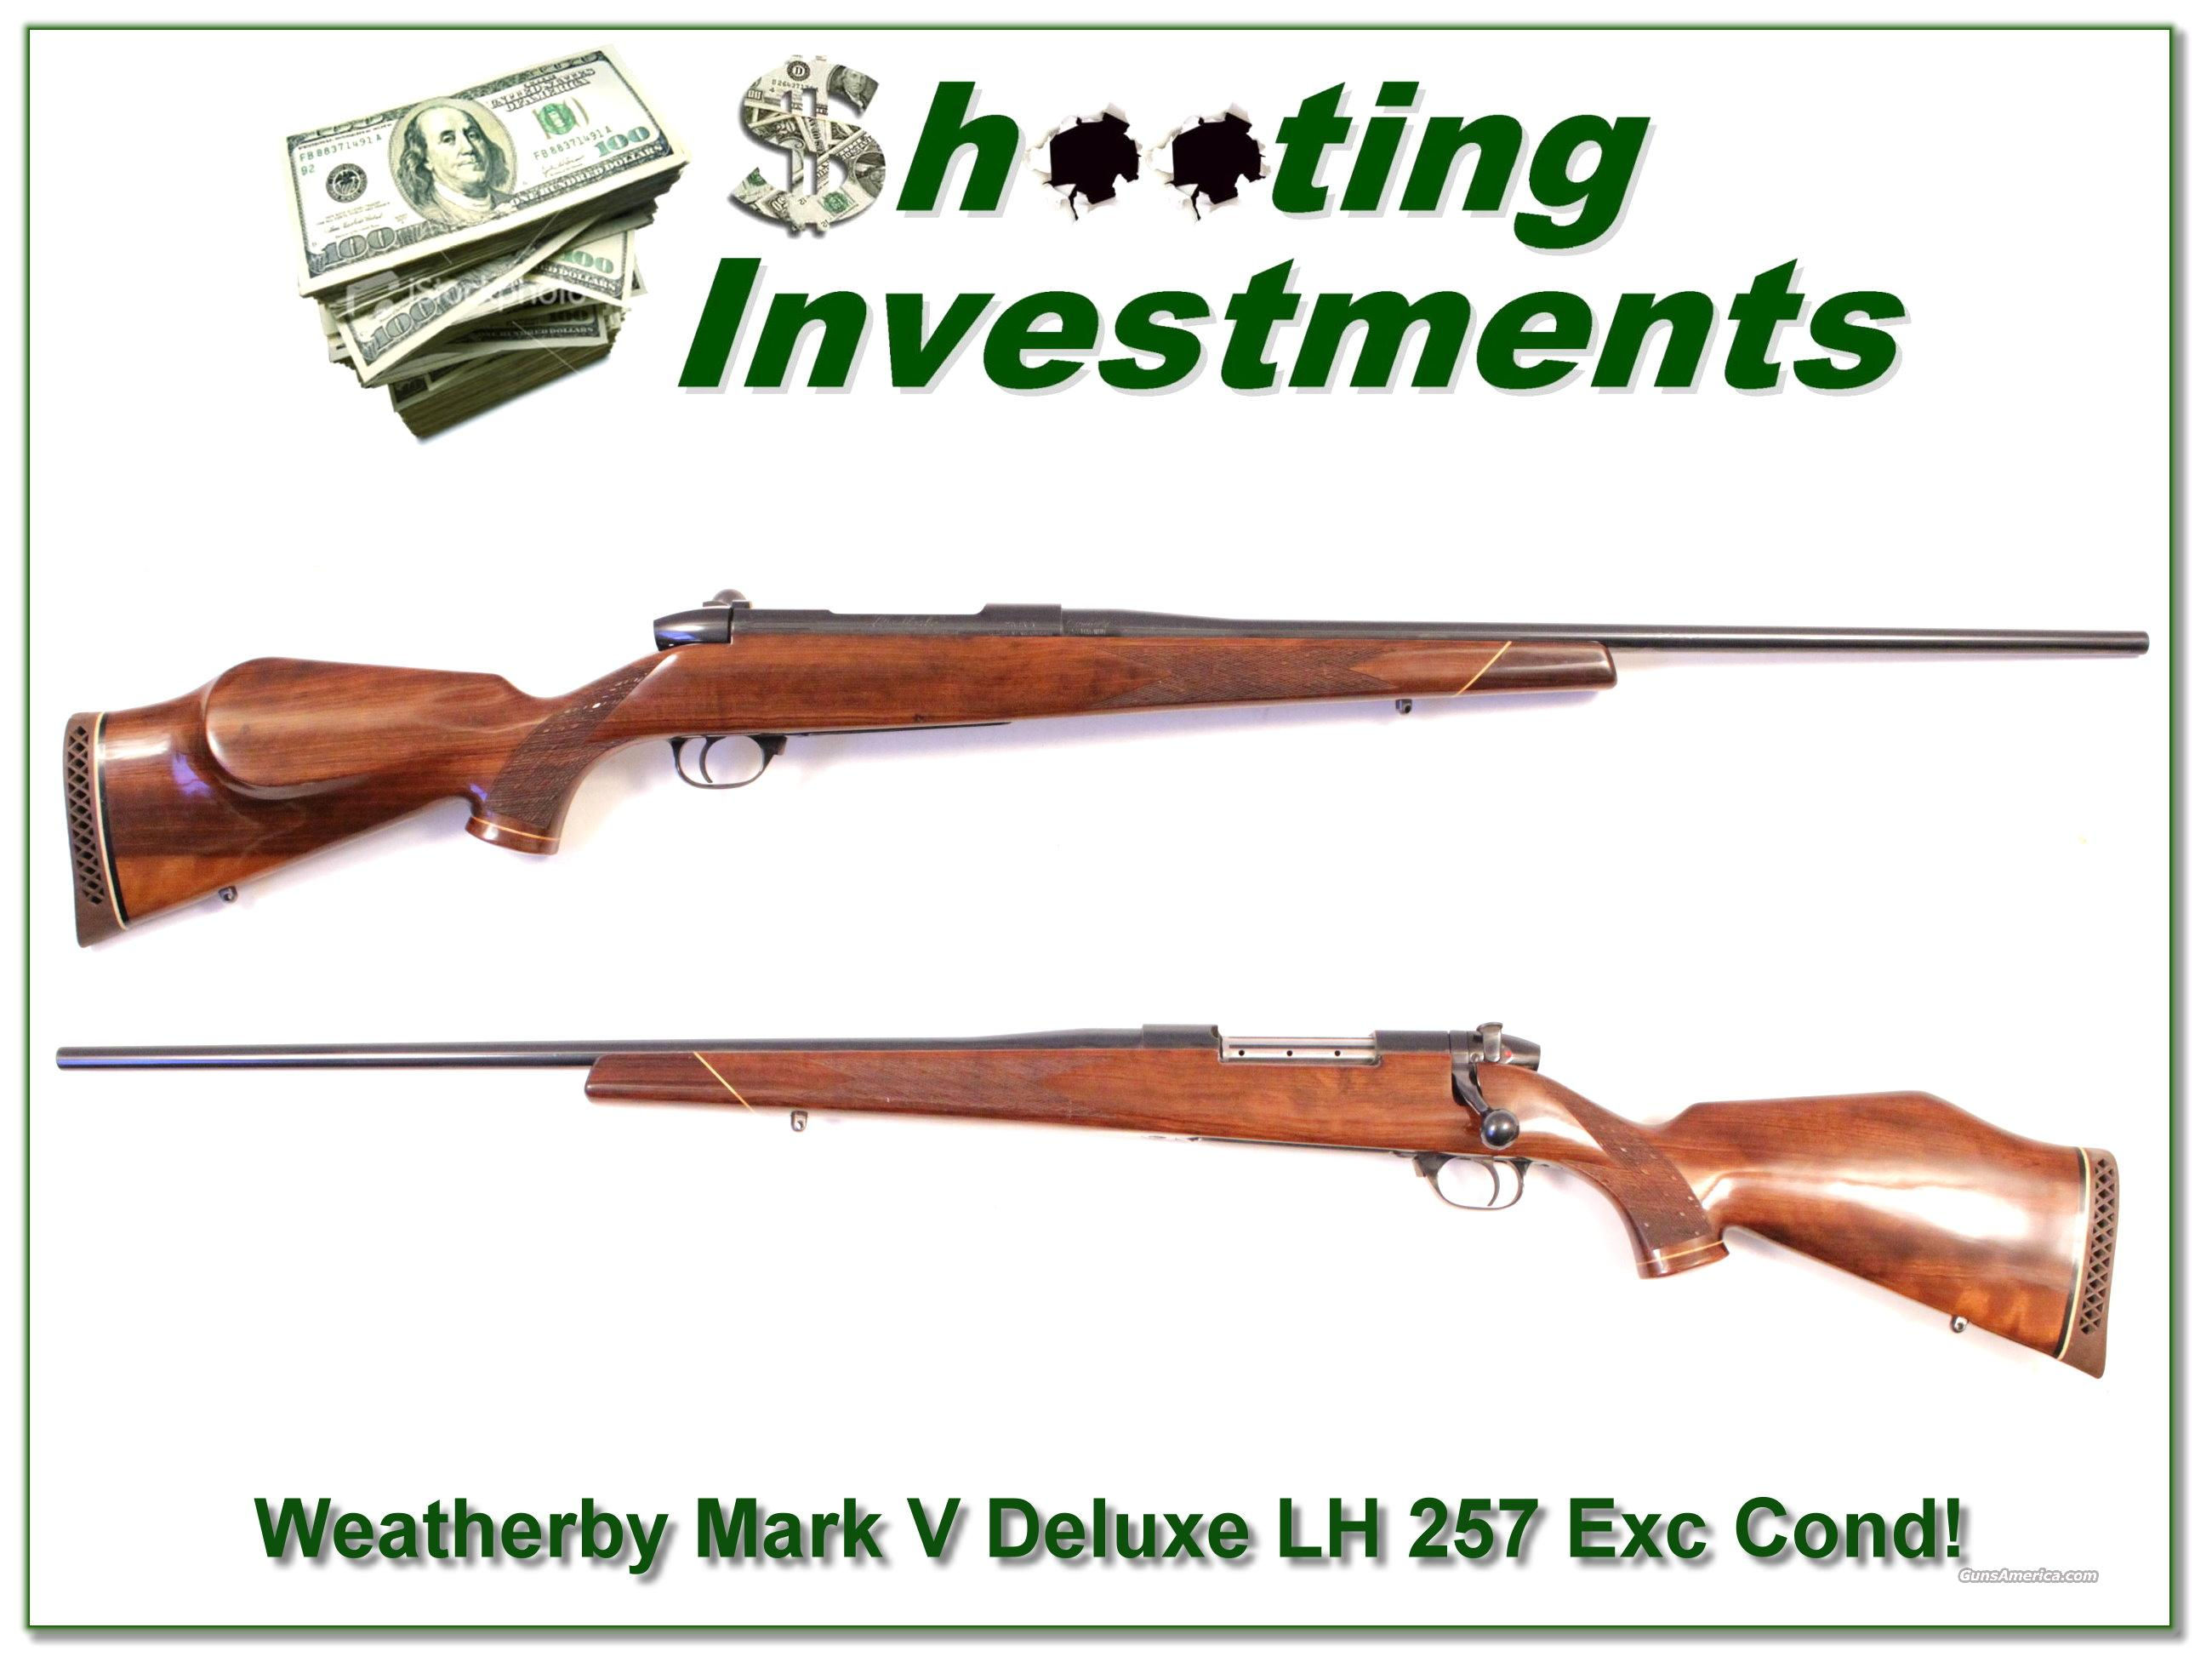 Weatherby Mark V Deluxe LH 257 Exc Cond!  Guns > Rifles > Weatherby Rifles > Sporting